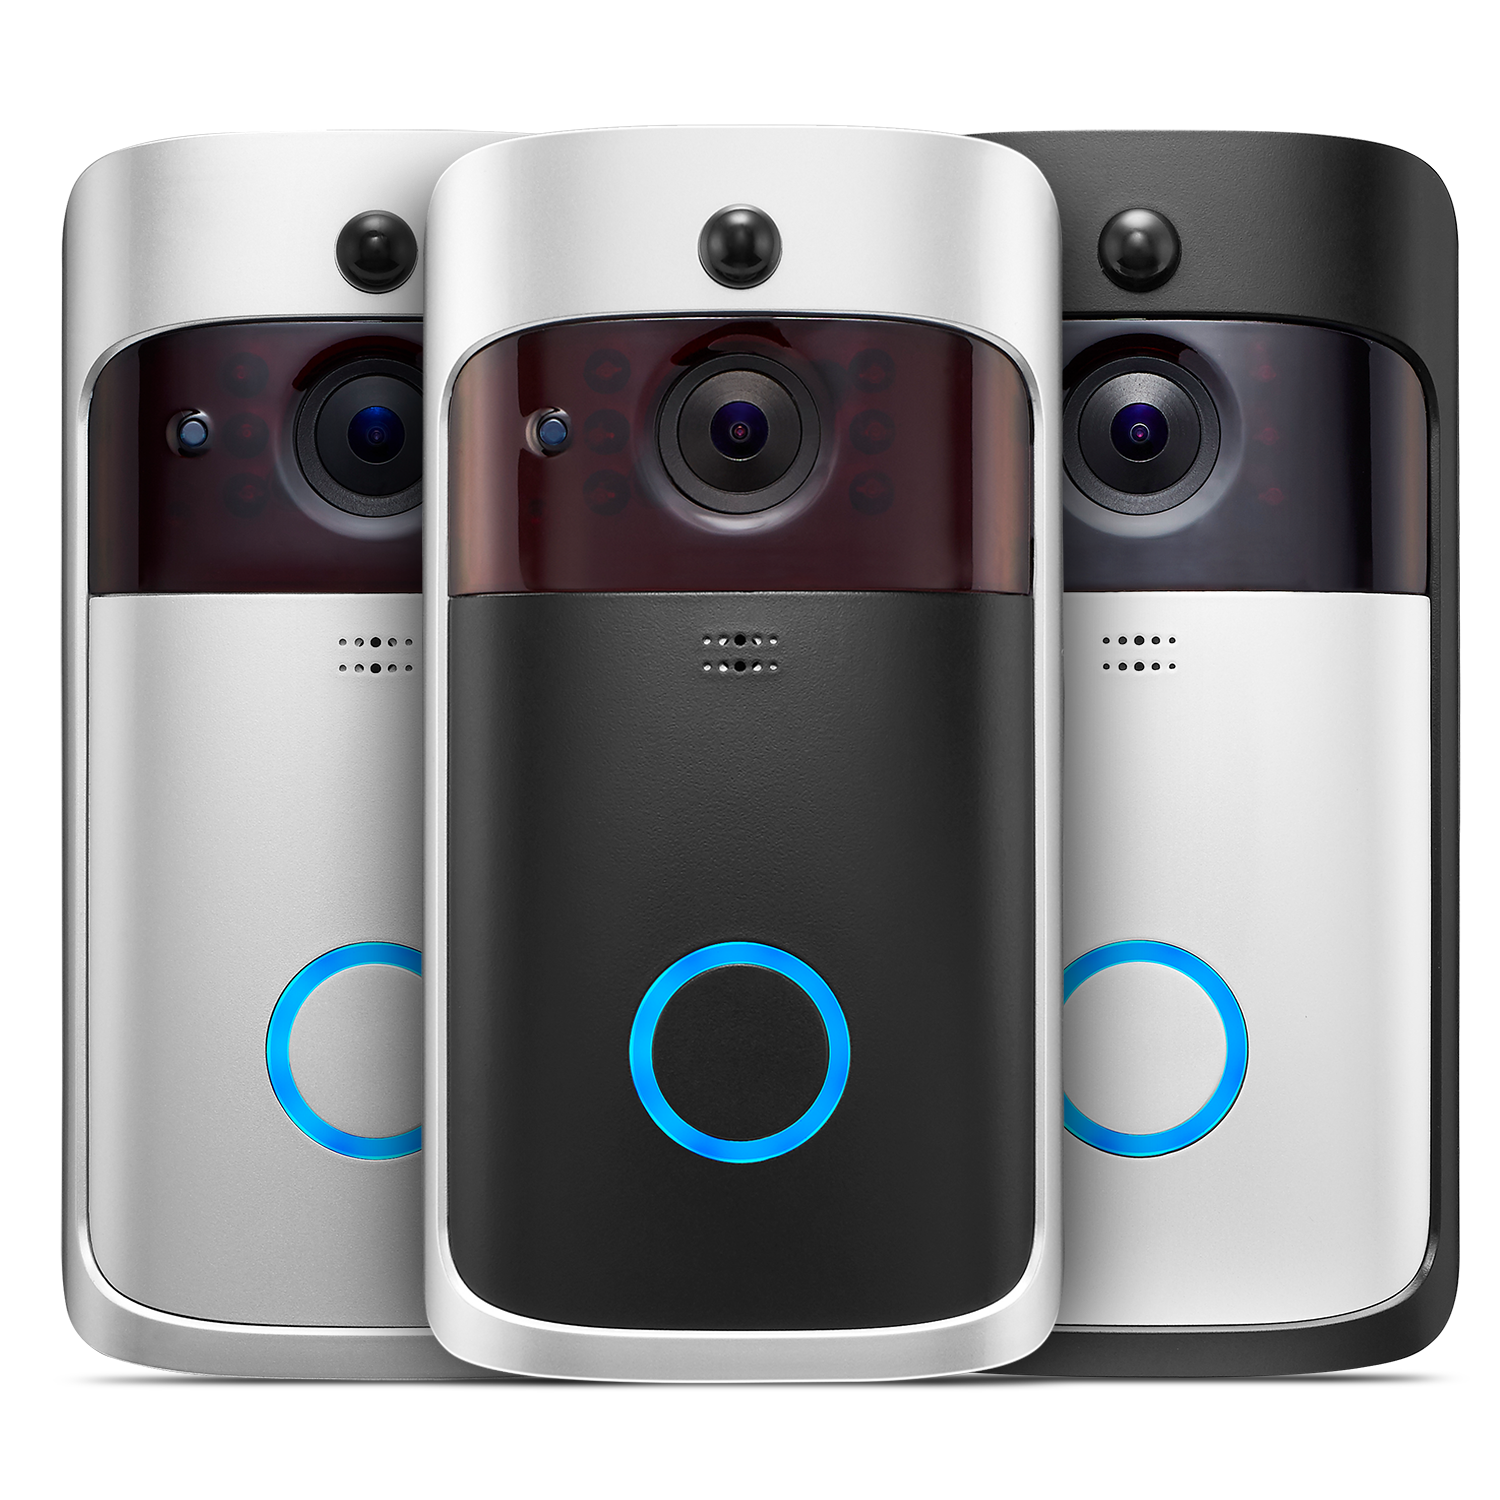 M3se Home Security Wireless WiFi Smart Visual Video Doorbell 1080P waterproof